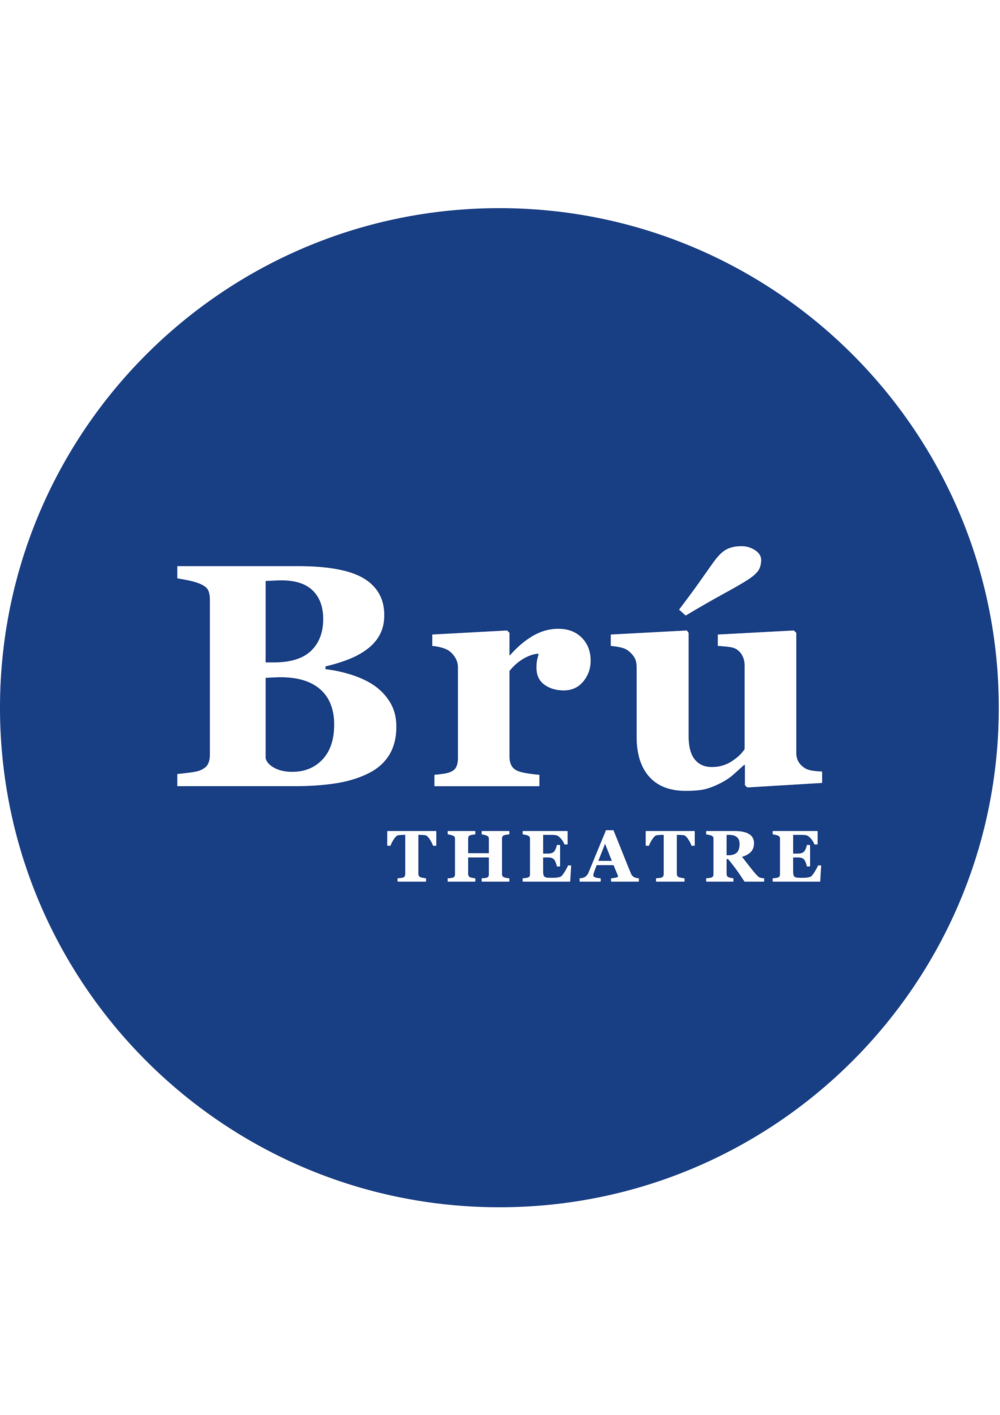 ABOUT - Brú Theatre was created in January 2018 by James Riordan. We tell stories inspired by the language, landscape and rich storytelling tradition rooted in the west of Ireland. The company are based in Galway beside the sea, and strive to marry European theatre technique with the rich tapestry of Irish stories. Working bilingually, we are interested in form, rhythm and imagination.